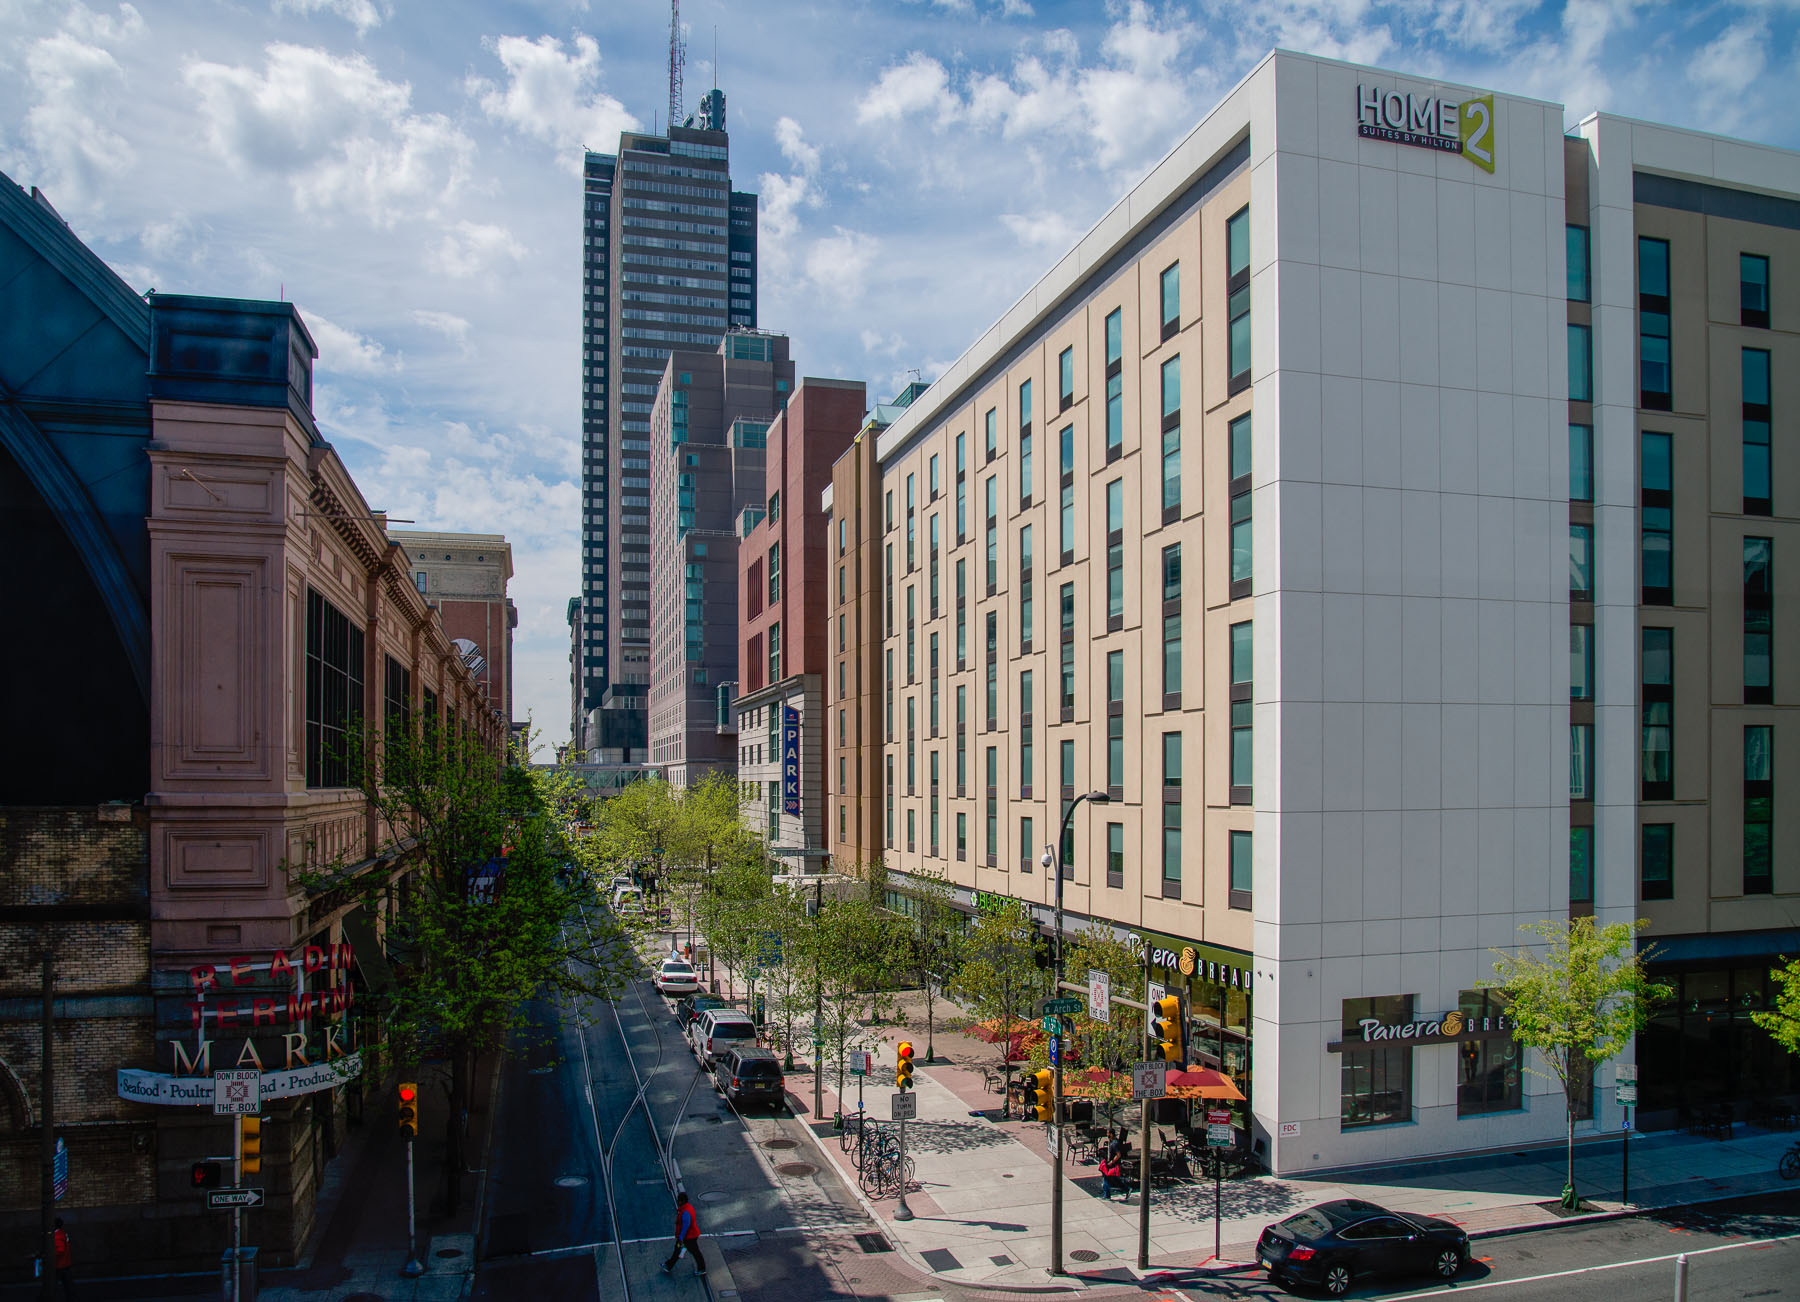 12th and Arch Home2 Hotel